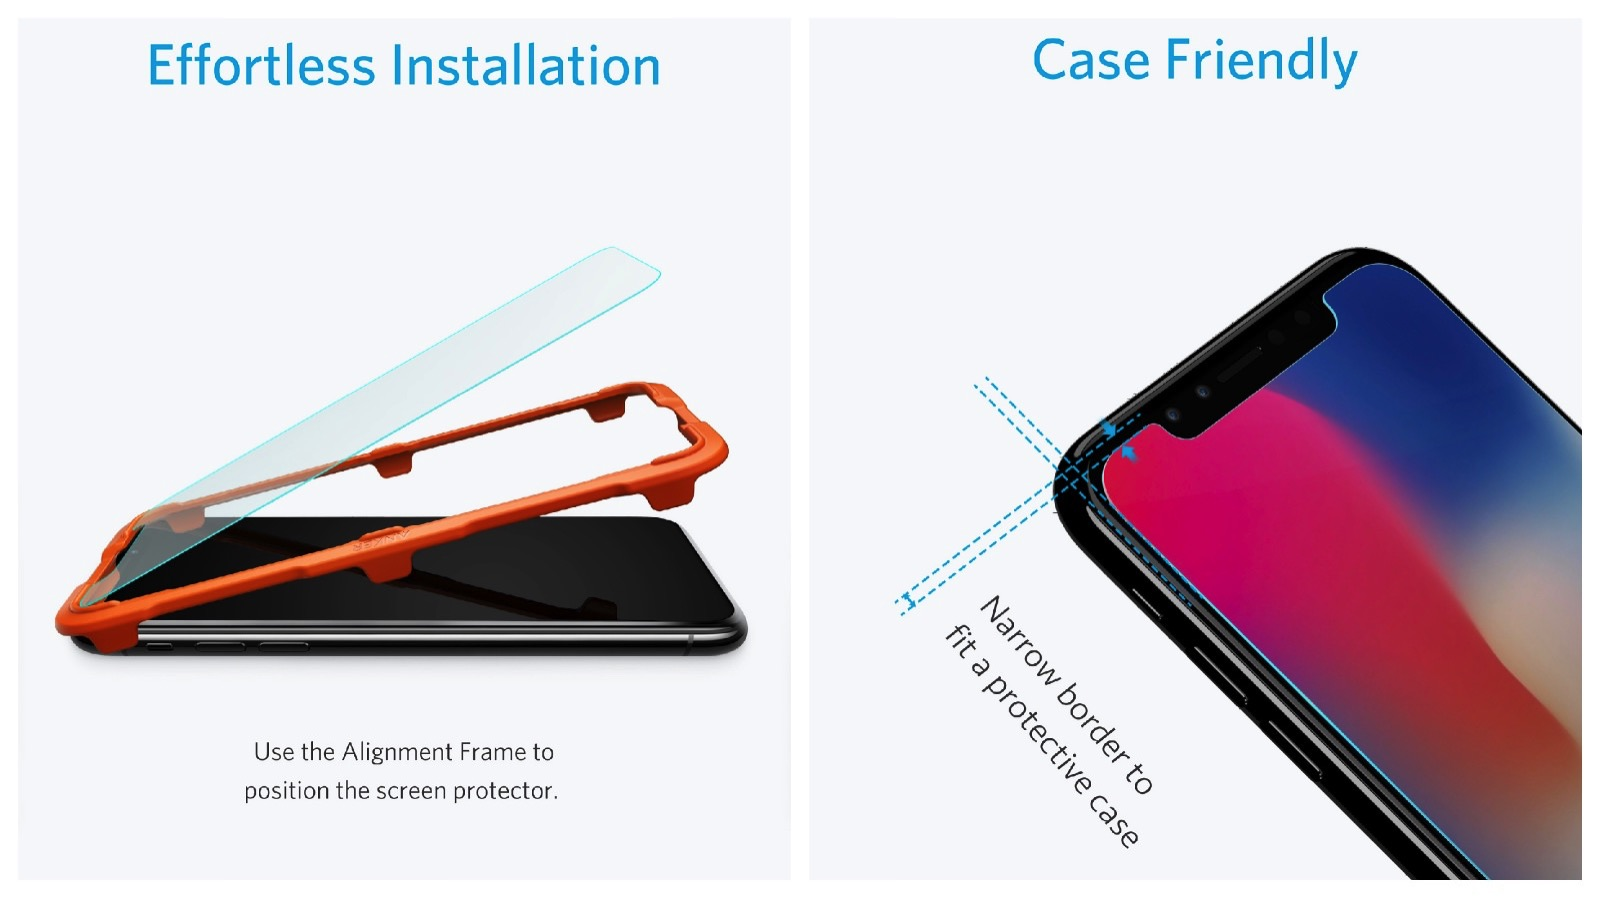 Anker GlassGuard case friendly